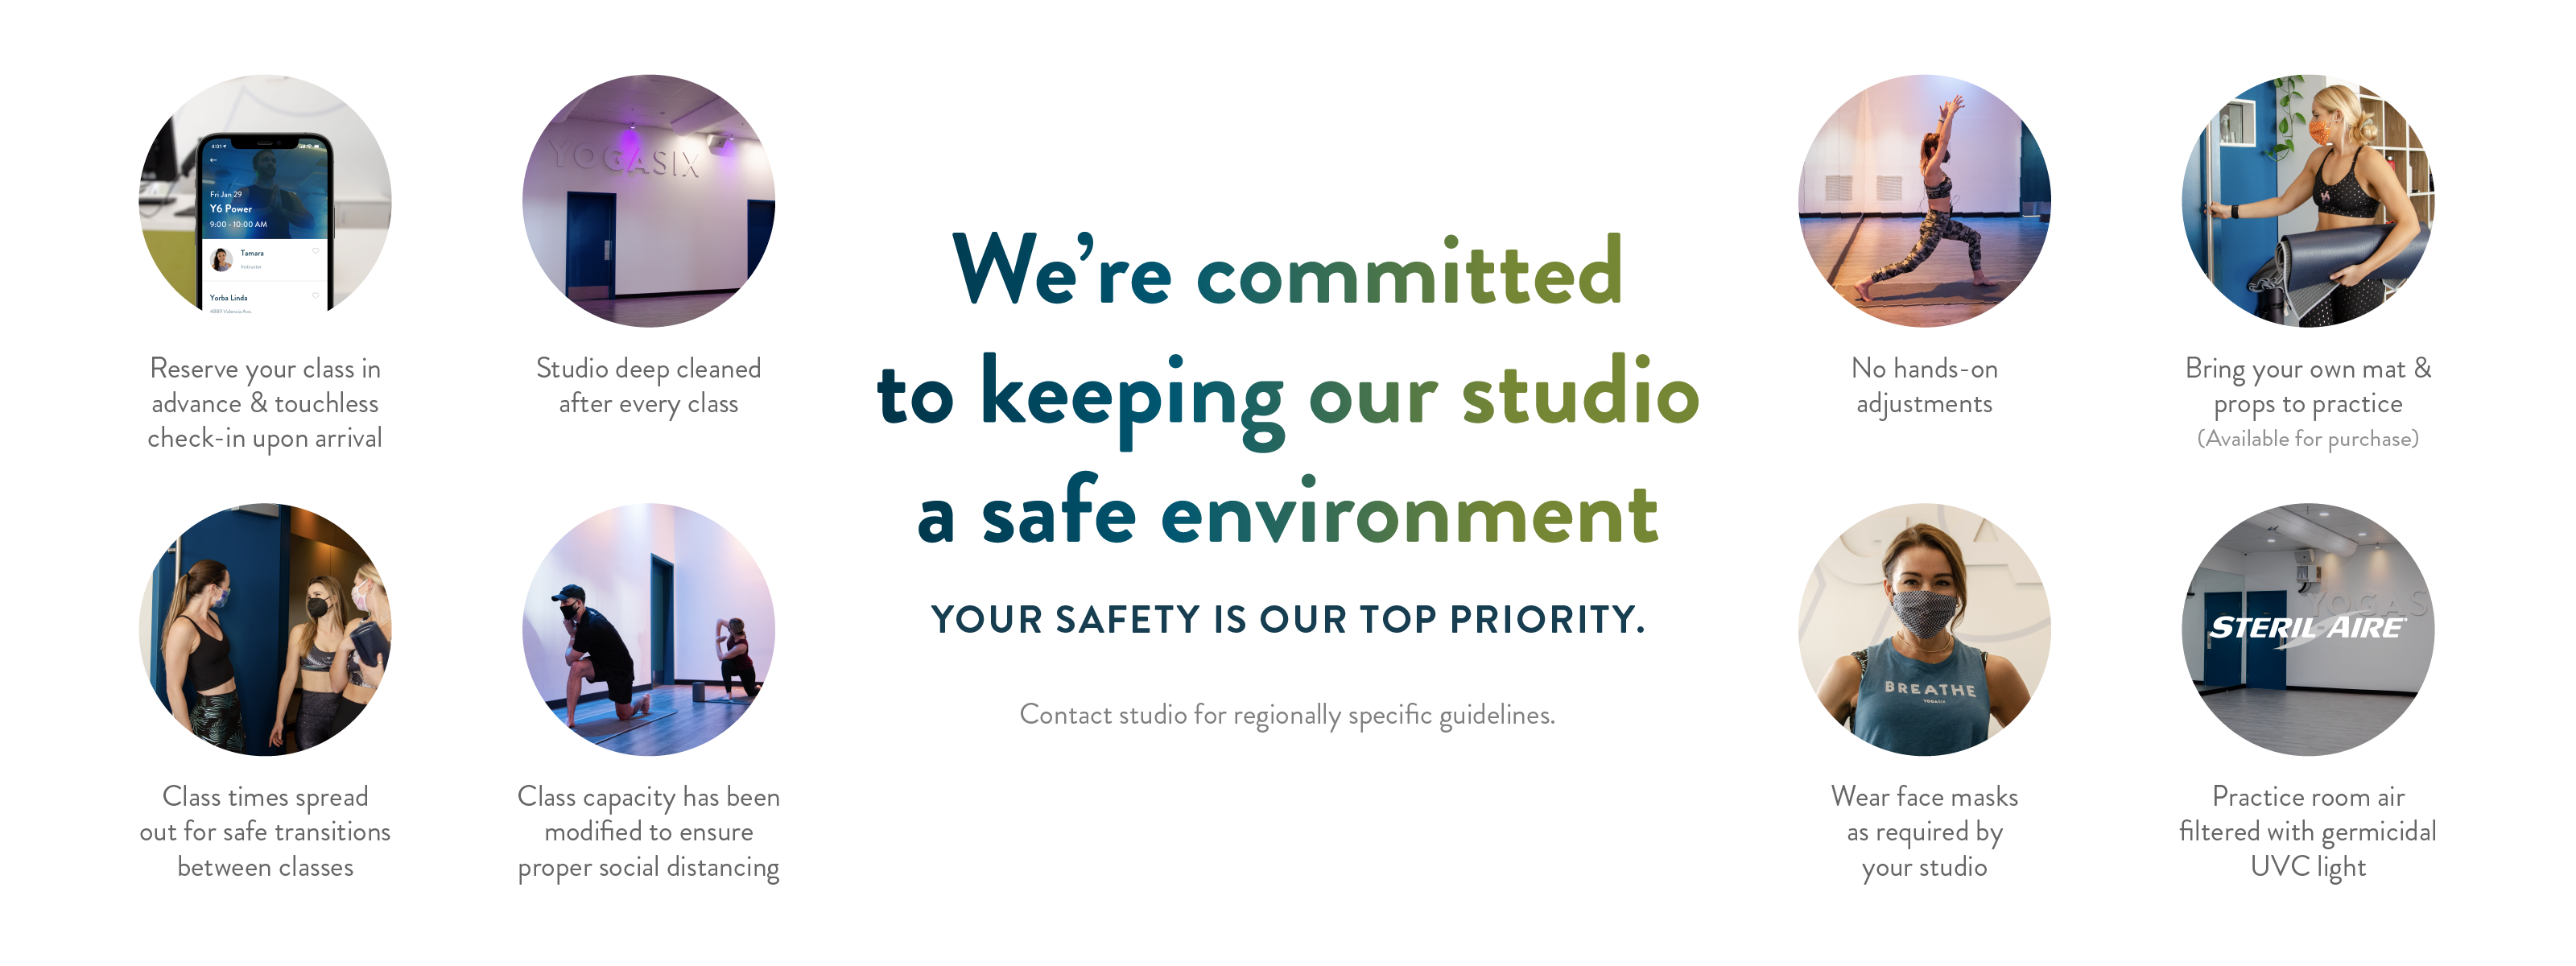 4_Studio-2-Safety